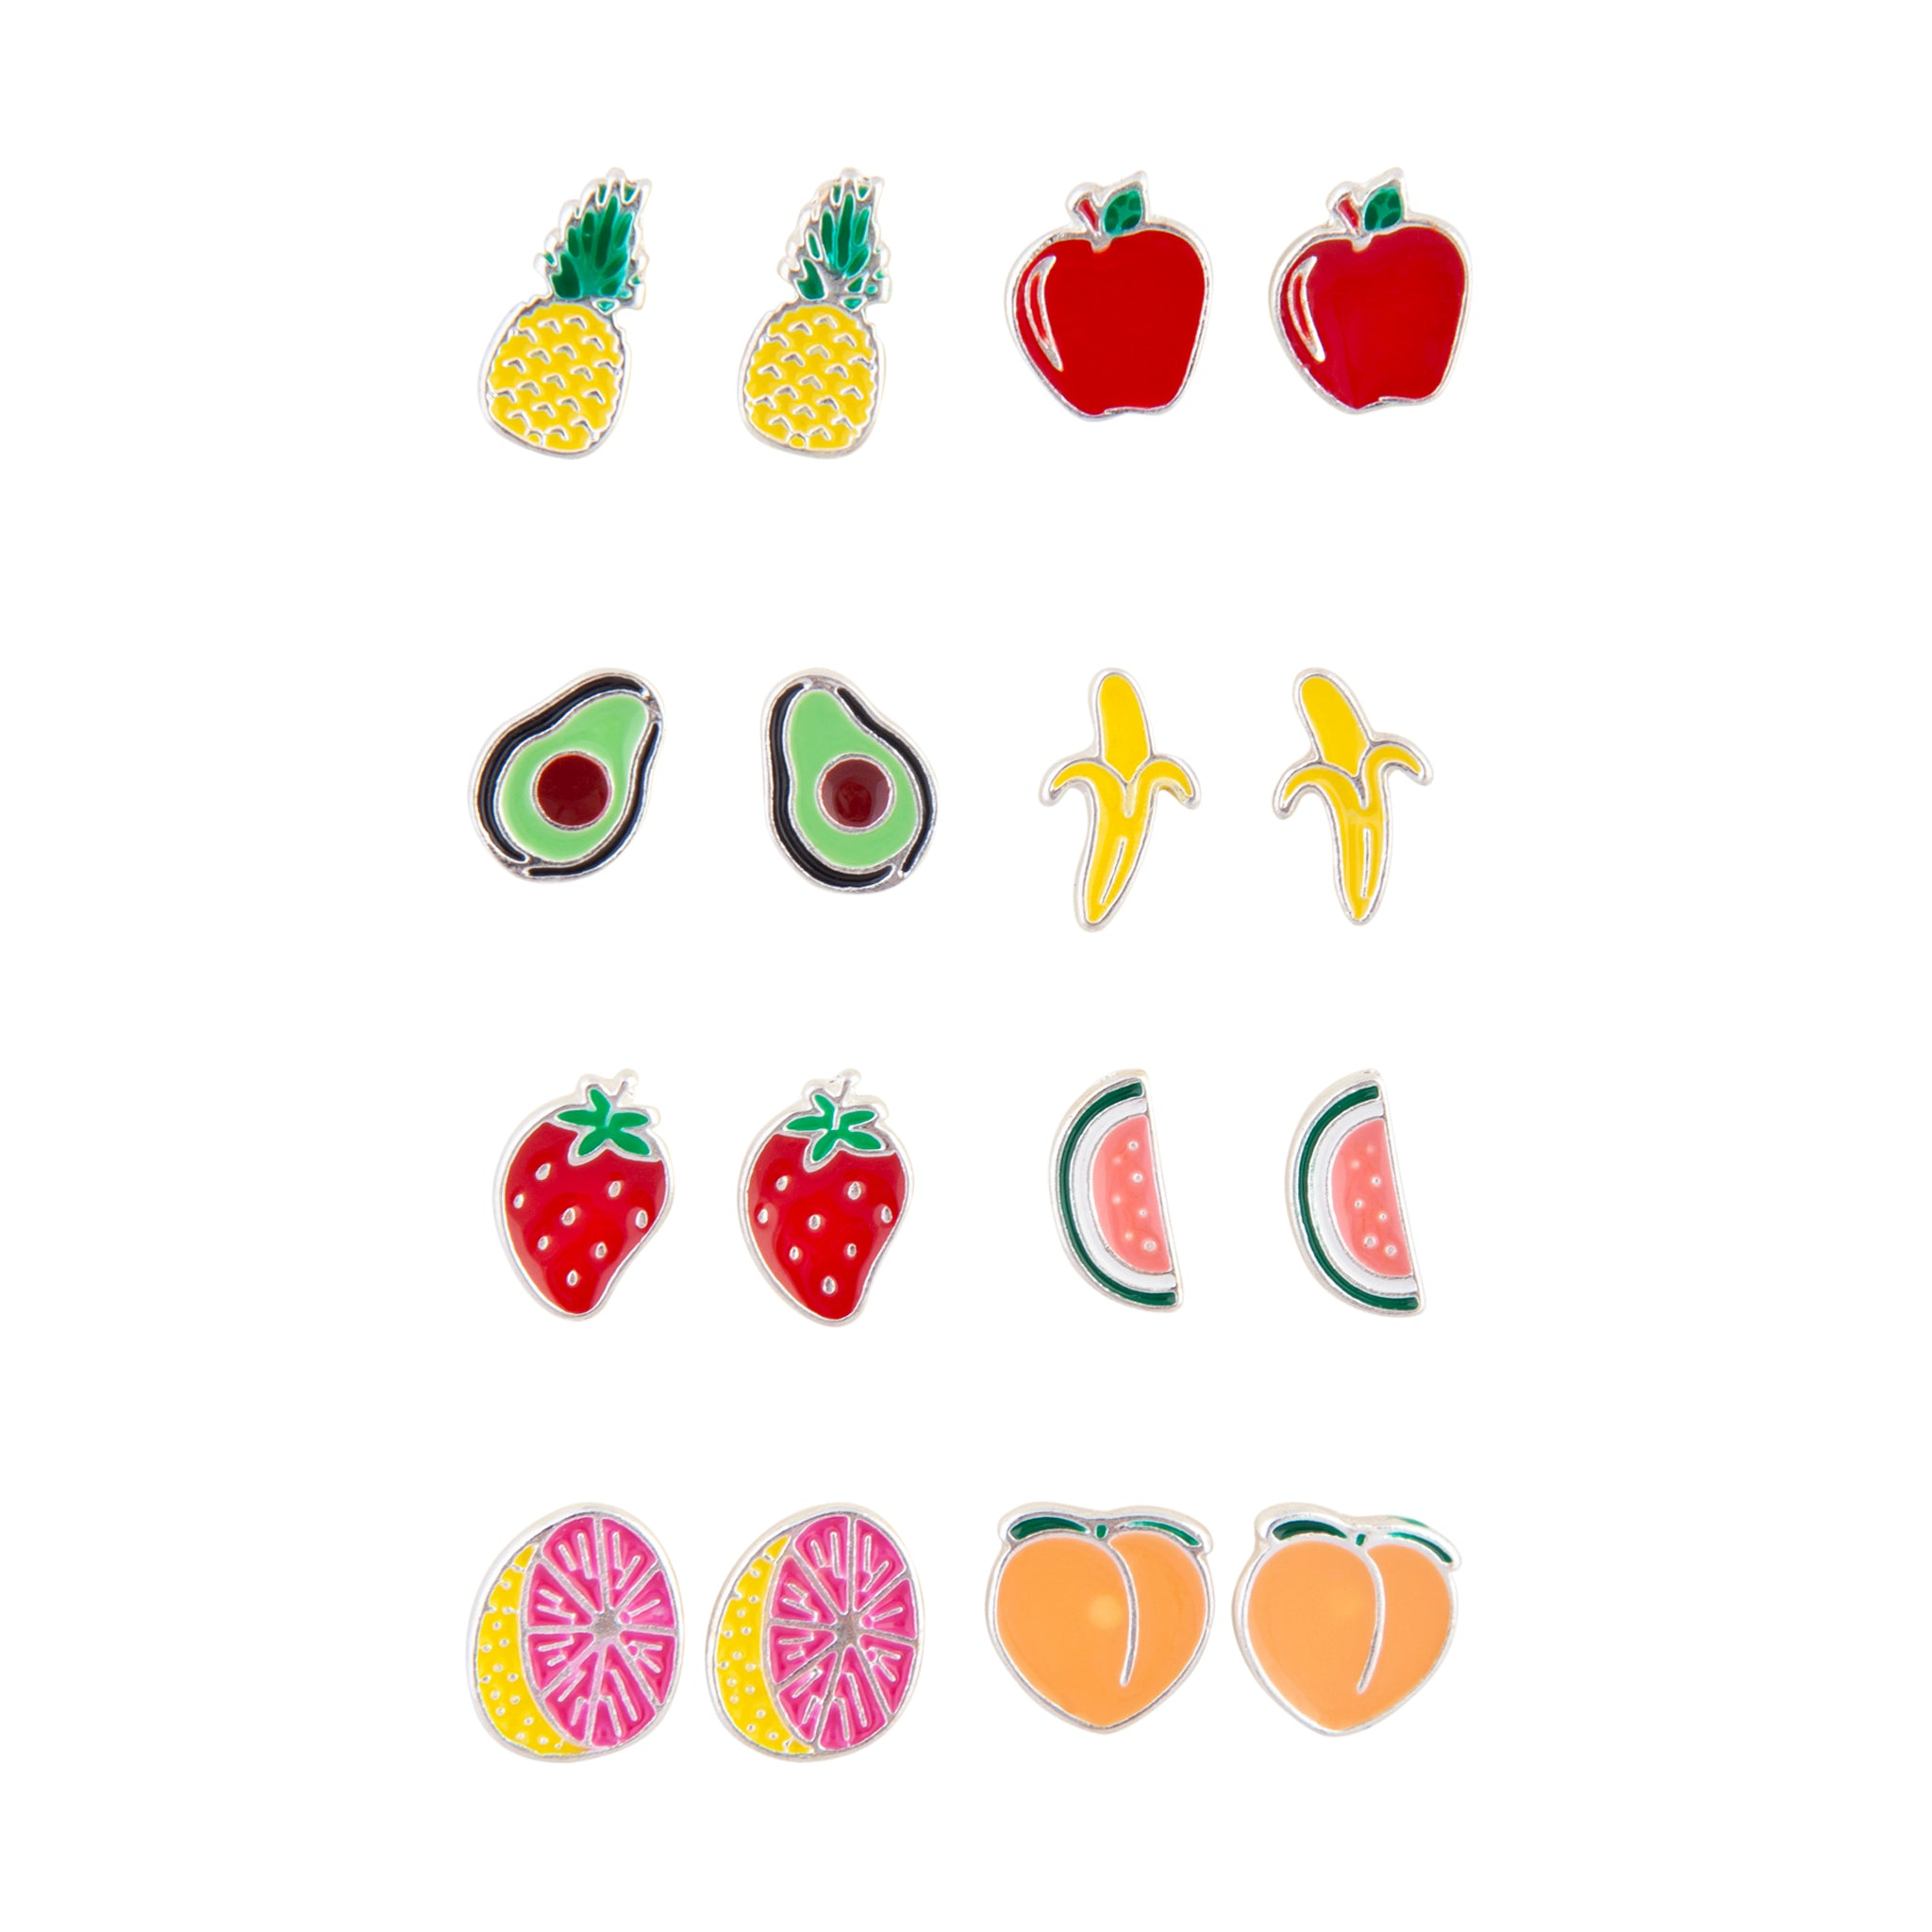 Mixed Fruits Enamel Stud Earring 8 Pack